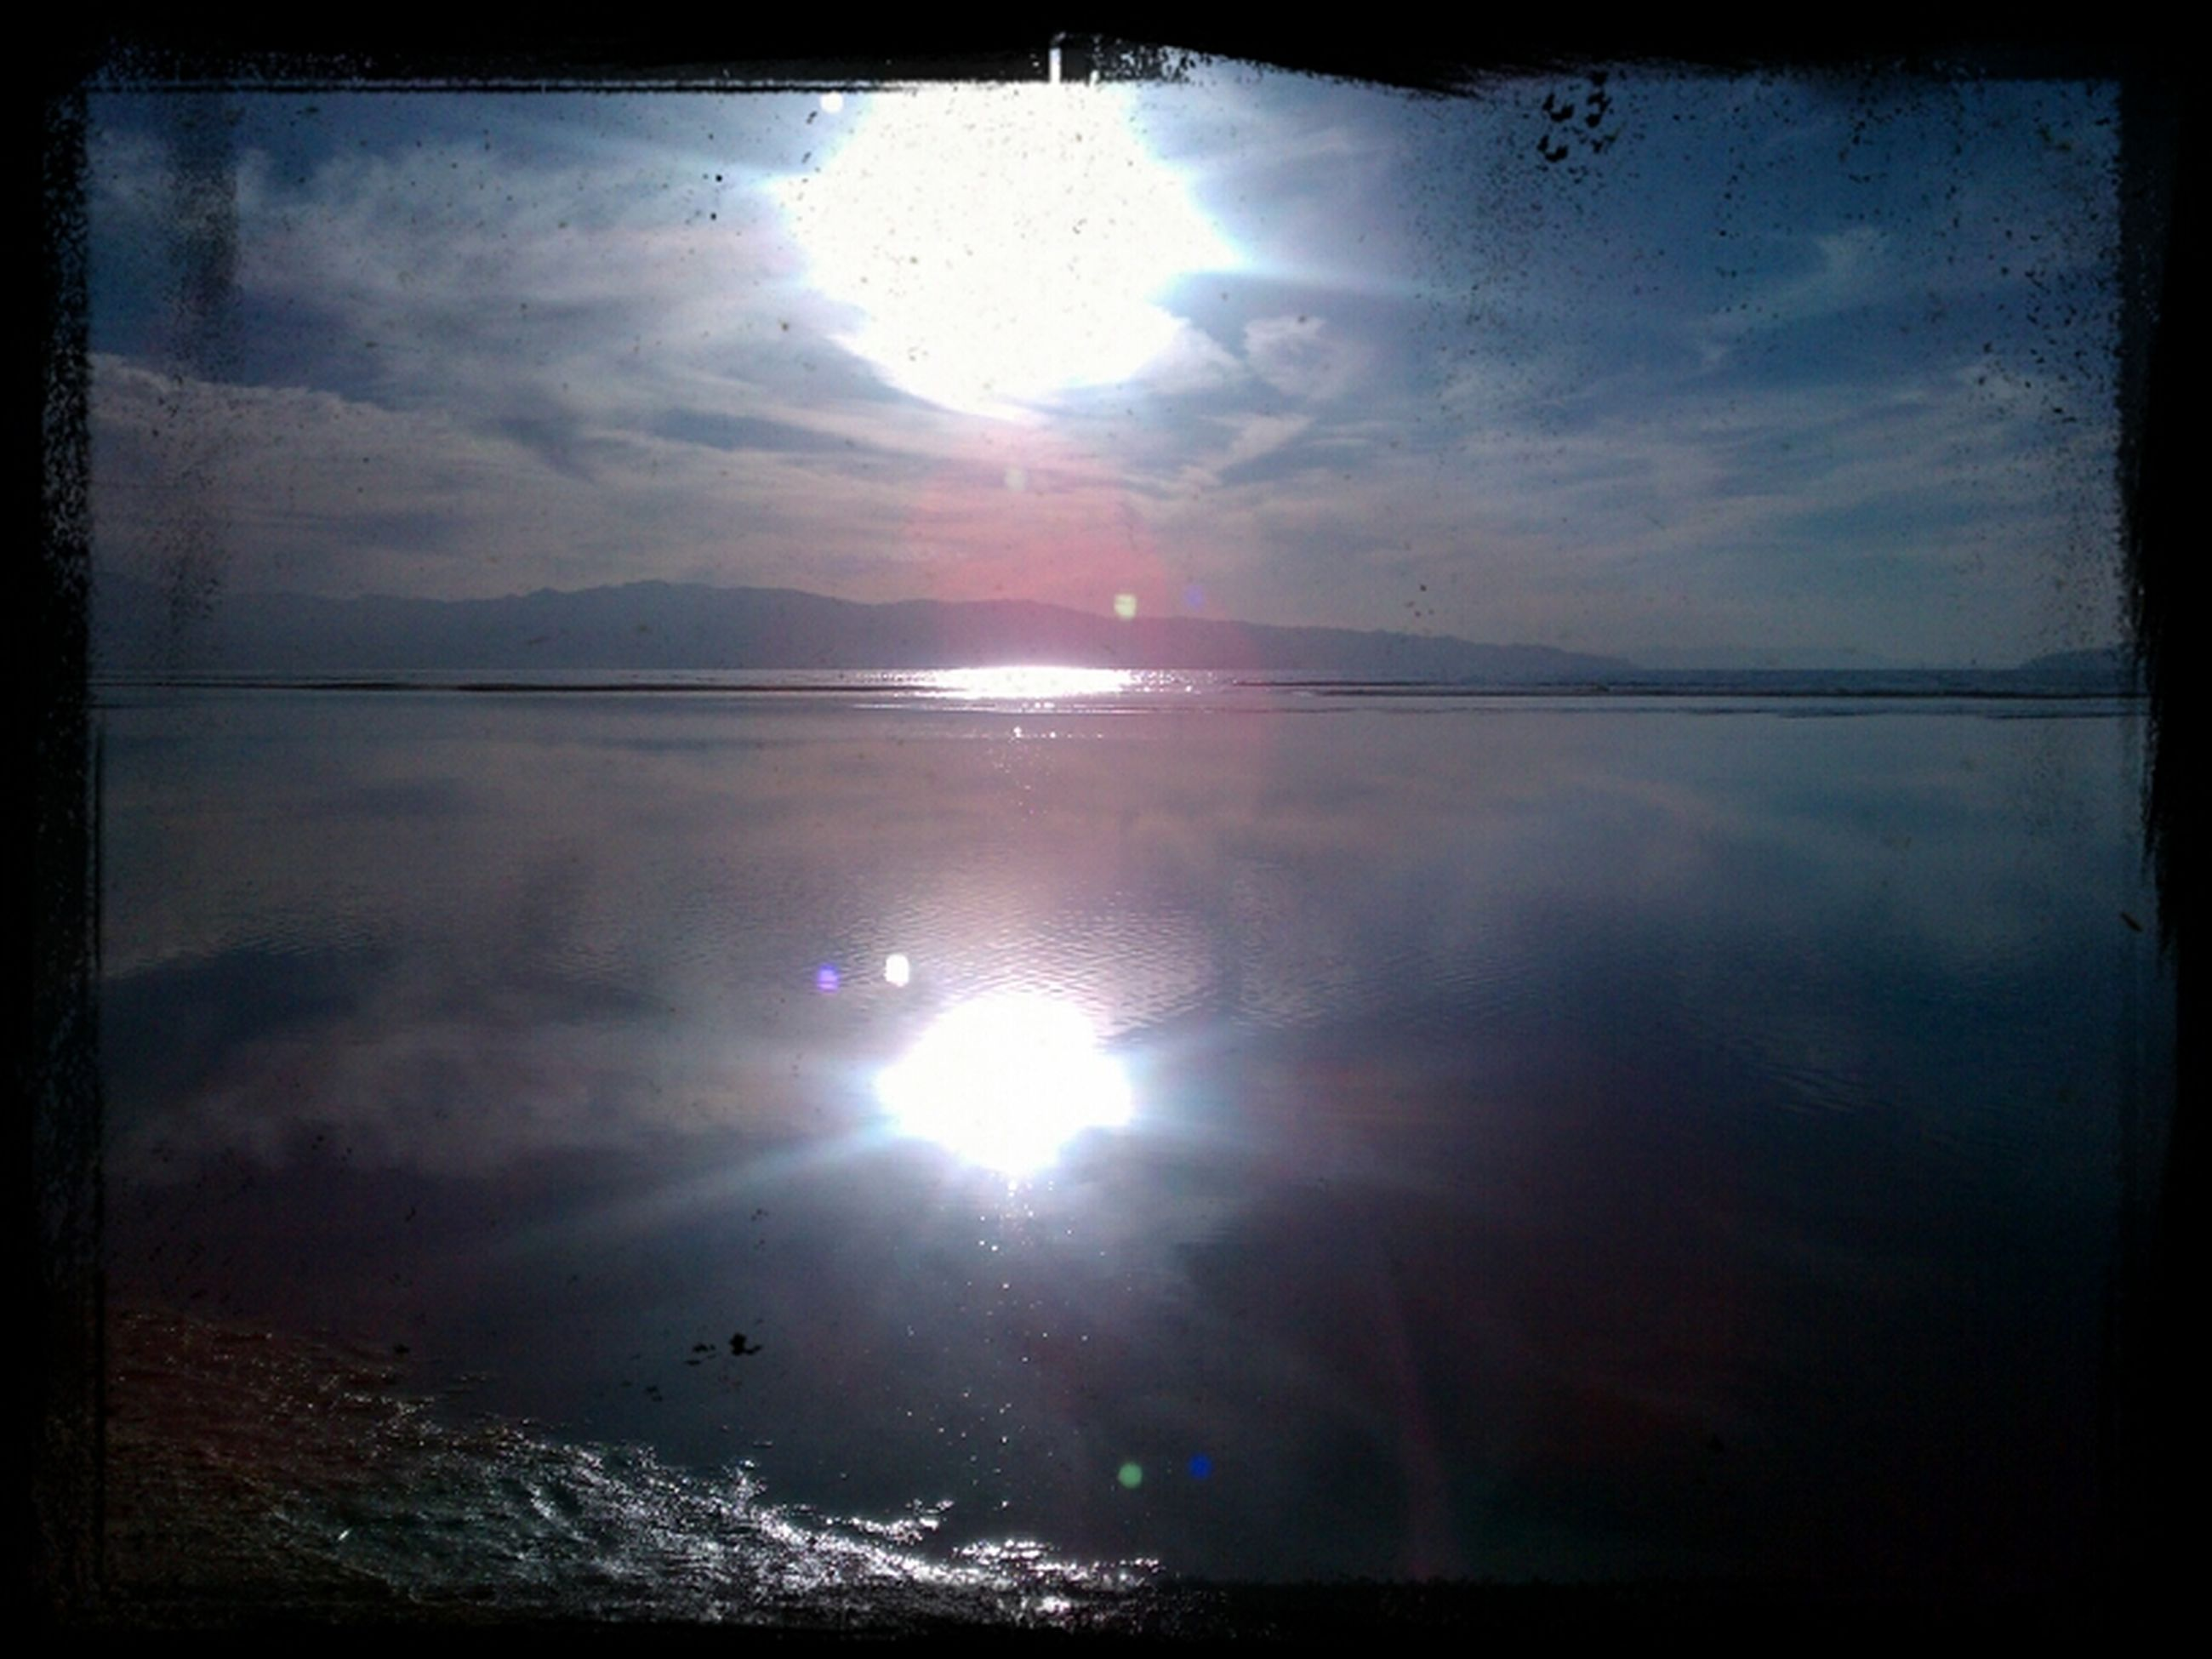 sun, transfer print, reflection, water, sunbeam, sky, tranquility, sunlight, tranquil scene, scenics, beauty in nature, sunset, lens flare, auto post production filter, nature, cloud - sky, idyllic, lake, bright, cloud